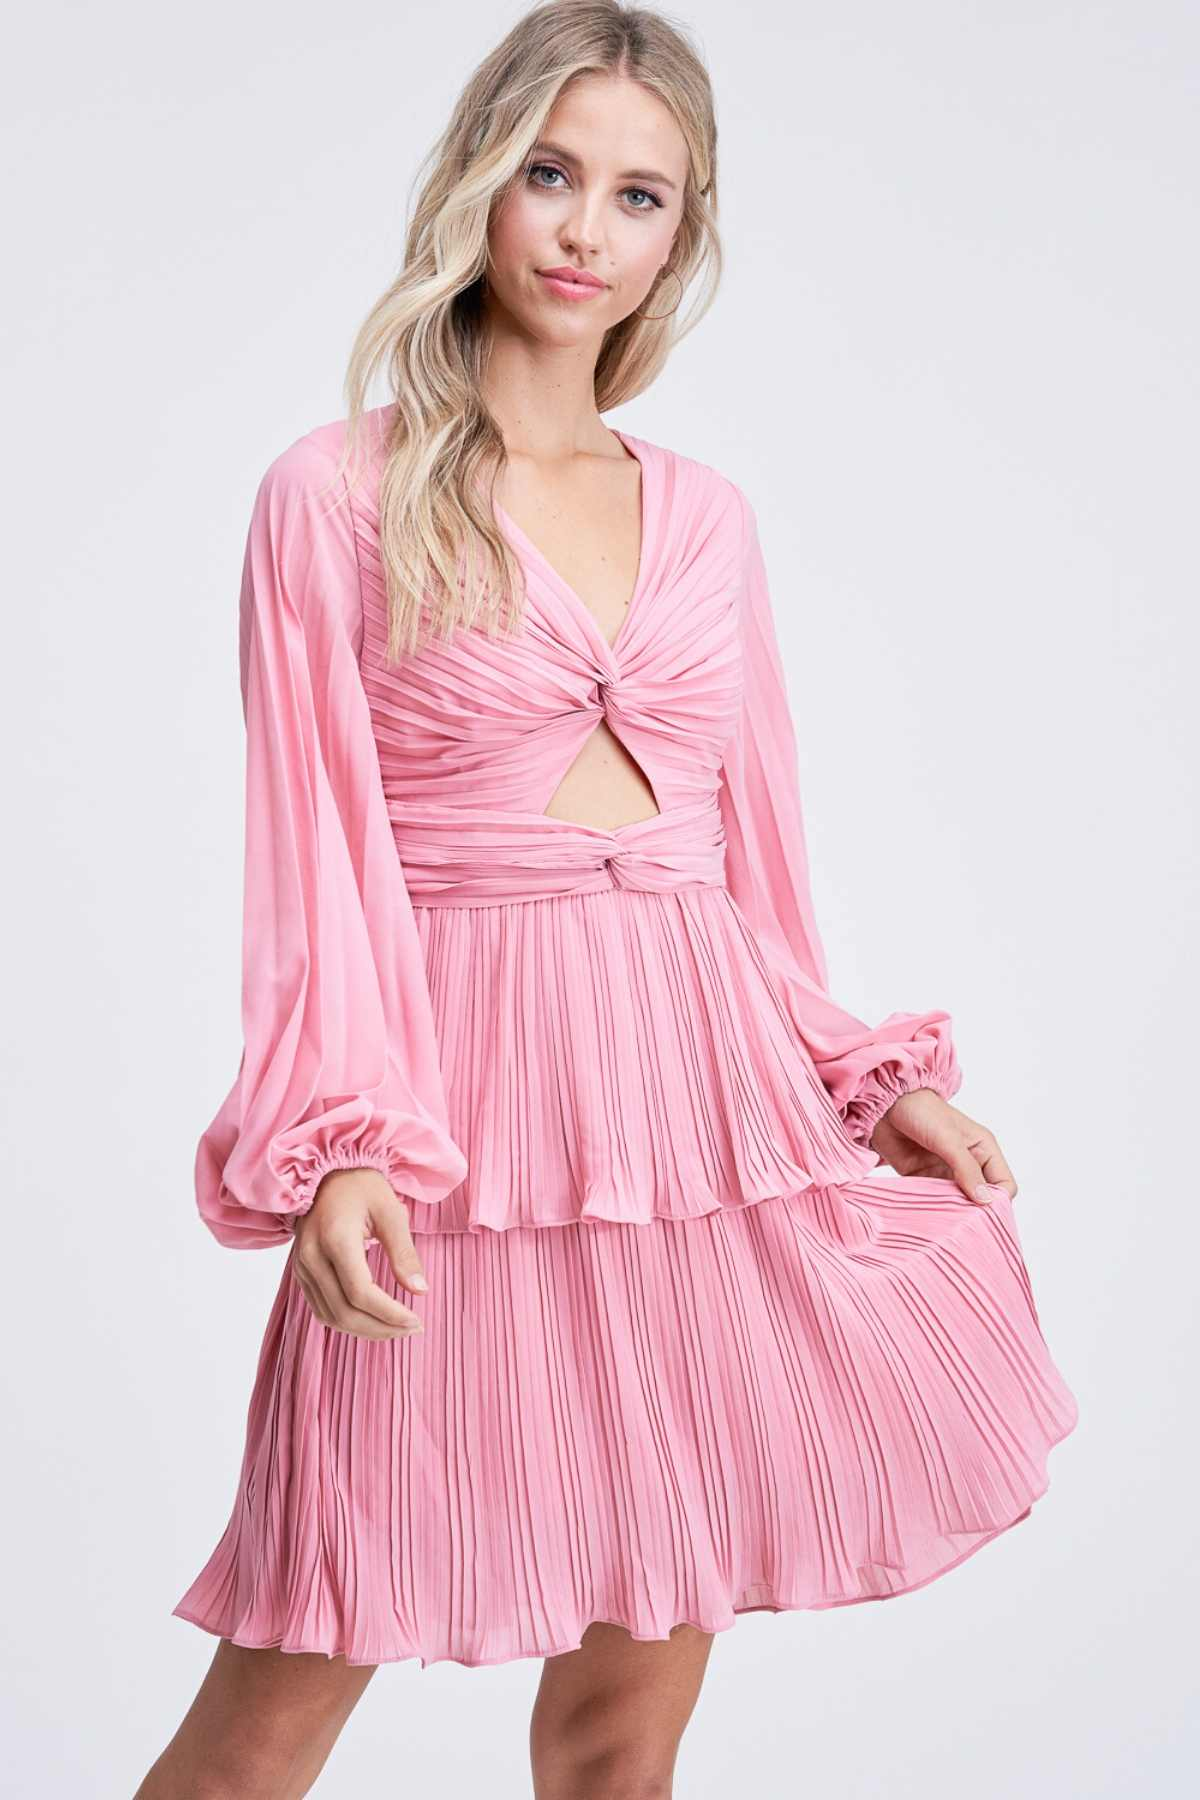 Catherine | Long Sleeve Ruffle Skirt Mini Dress